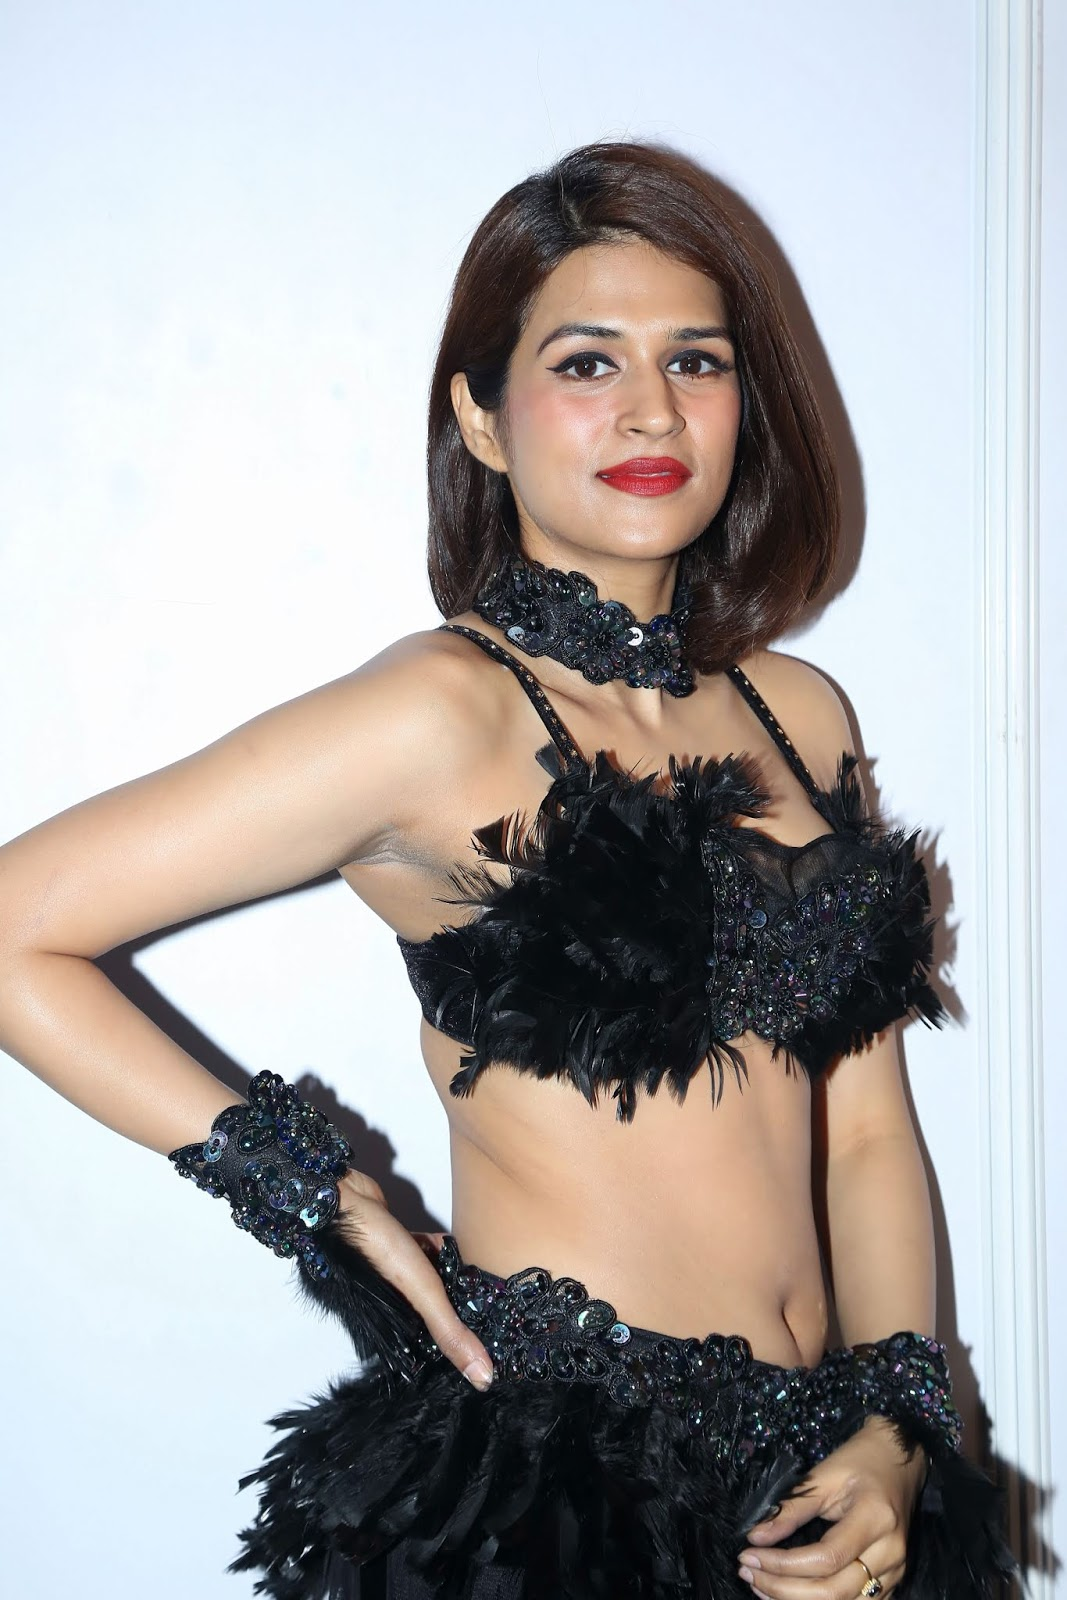 Shraddha Das in Lovely Black Bikini Blouse and Skirt at a Party